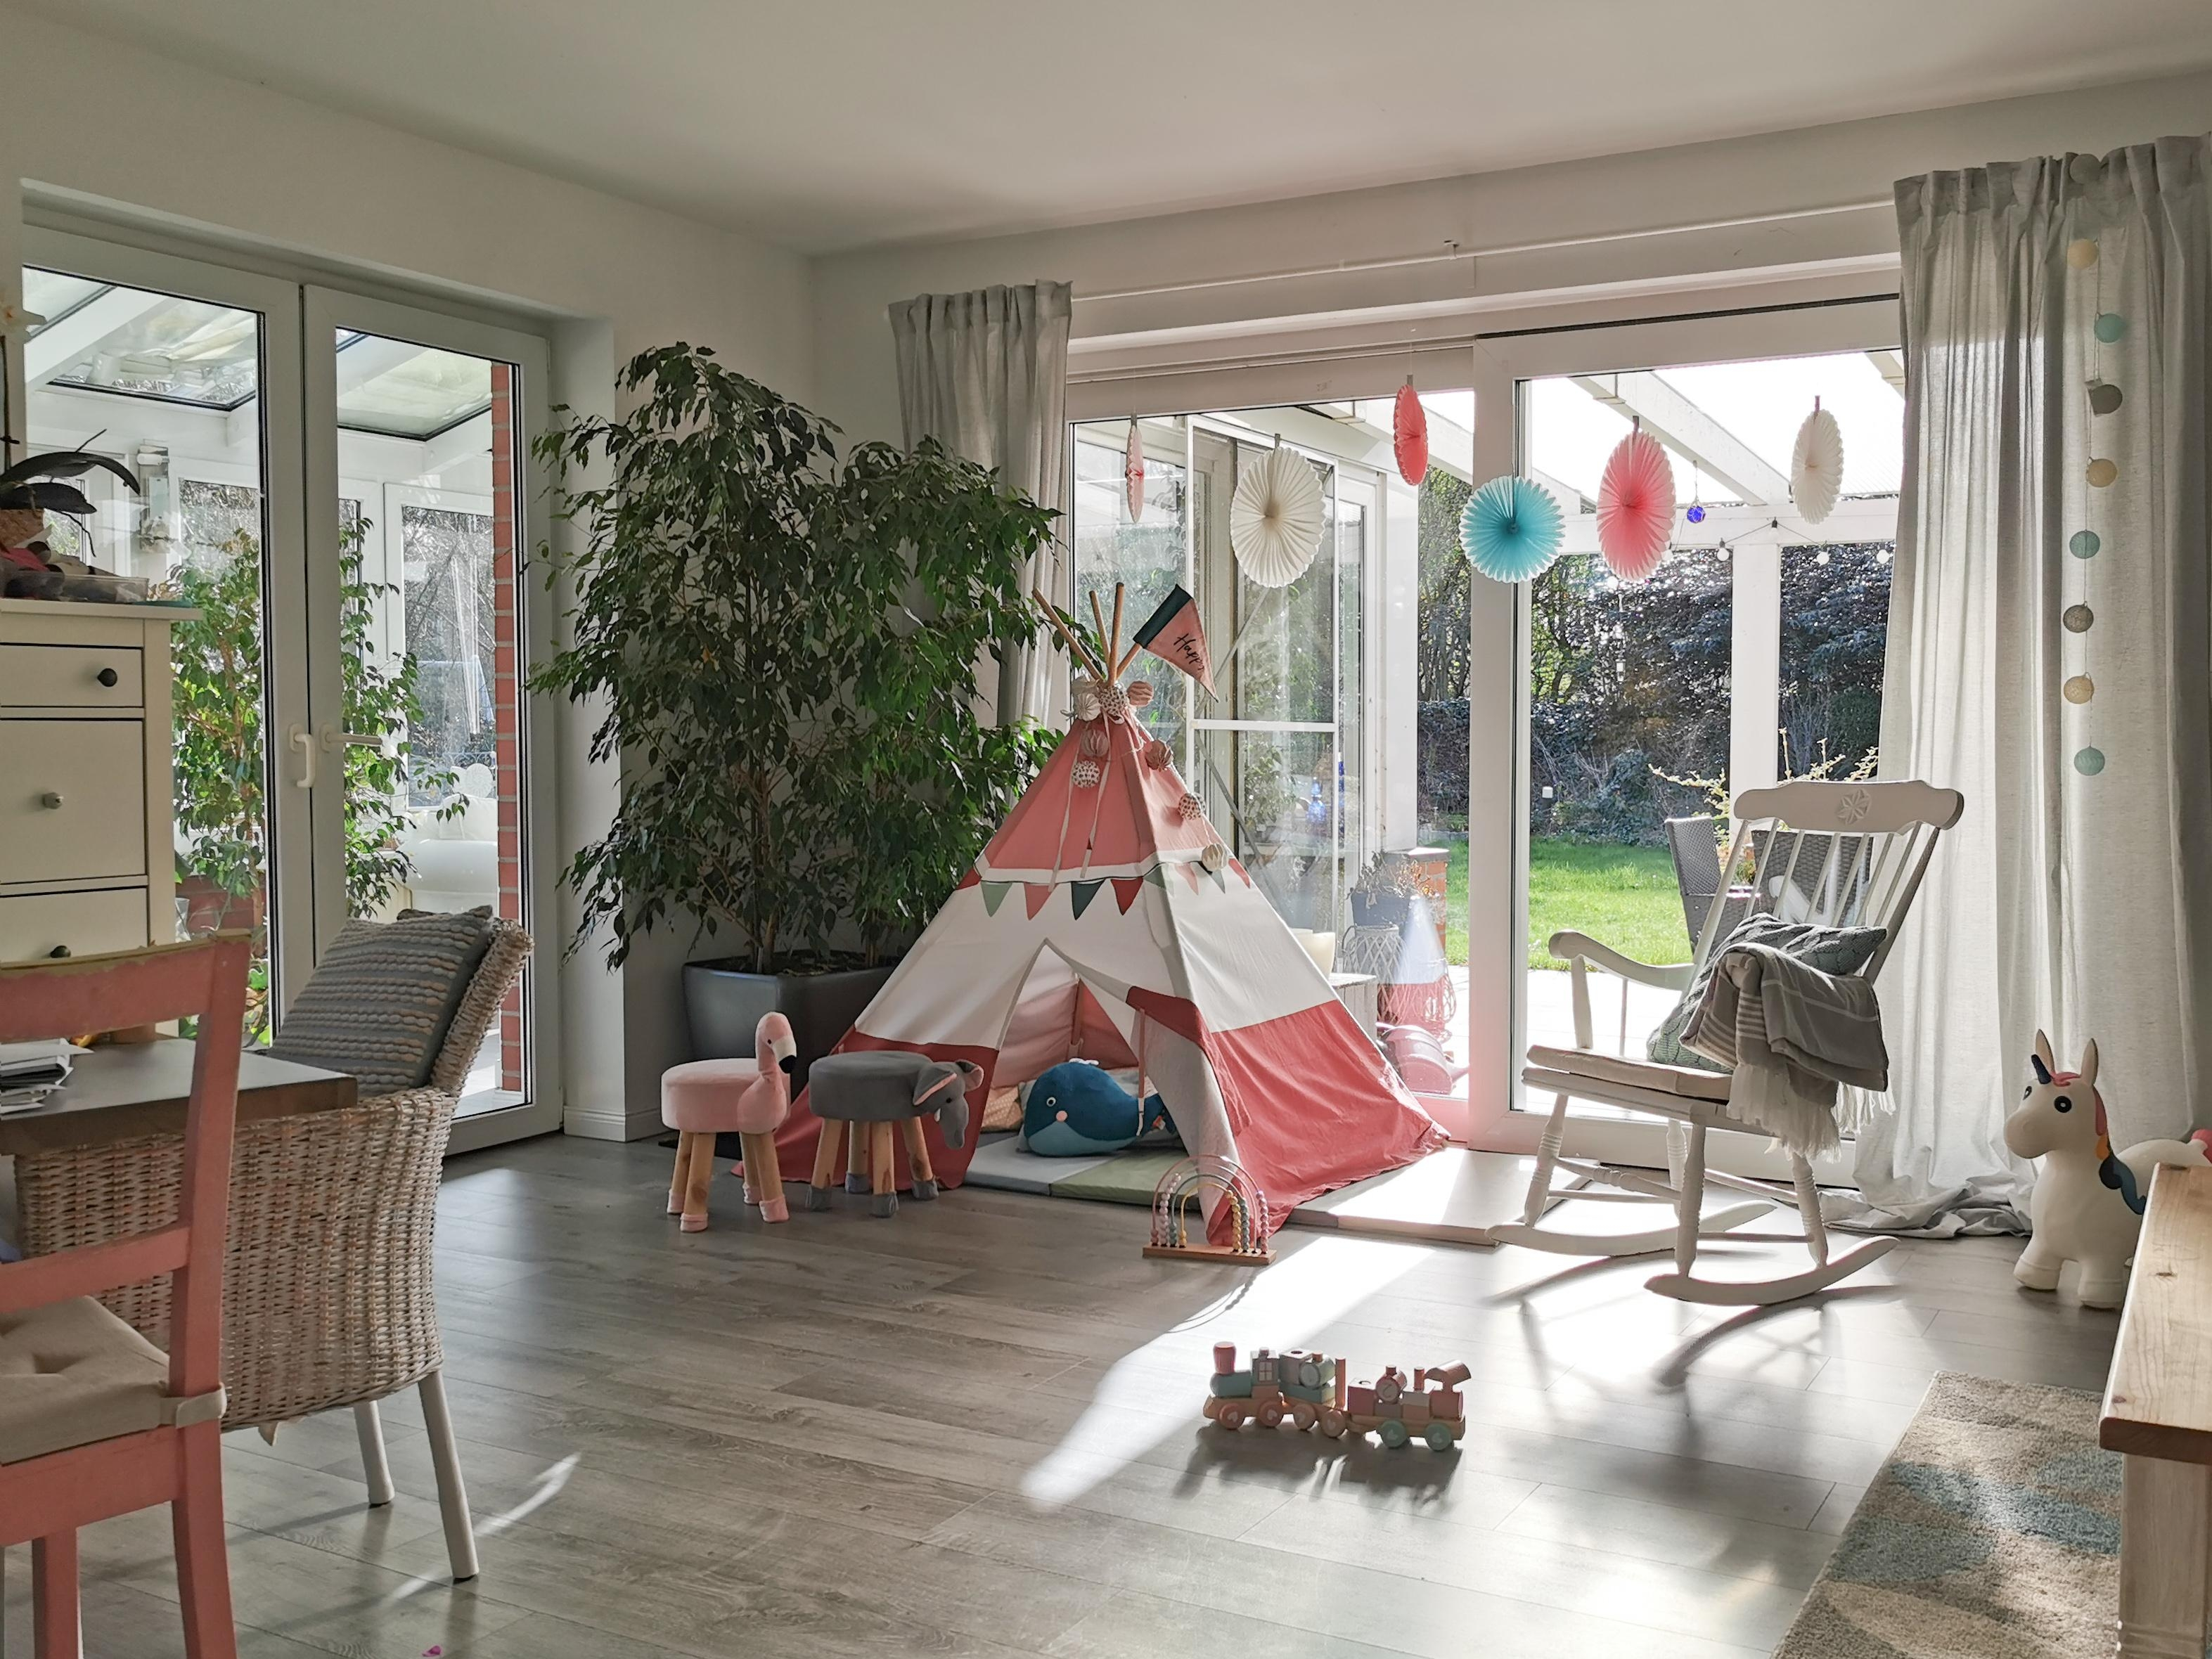 Leben mit Kindern... #Colourfulliving #mycolourfulhome #cozyhome #pastellliebe